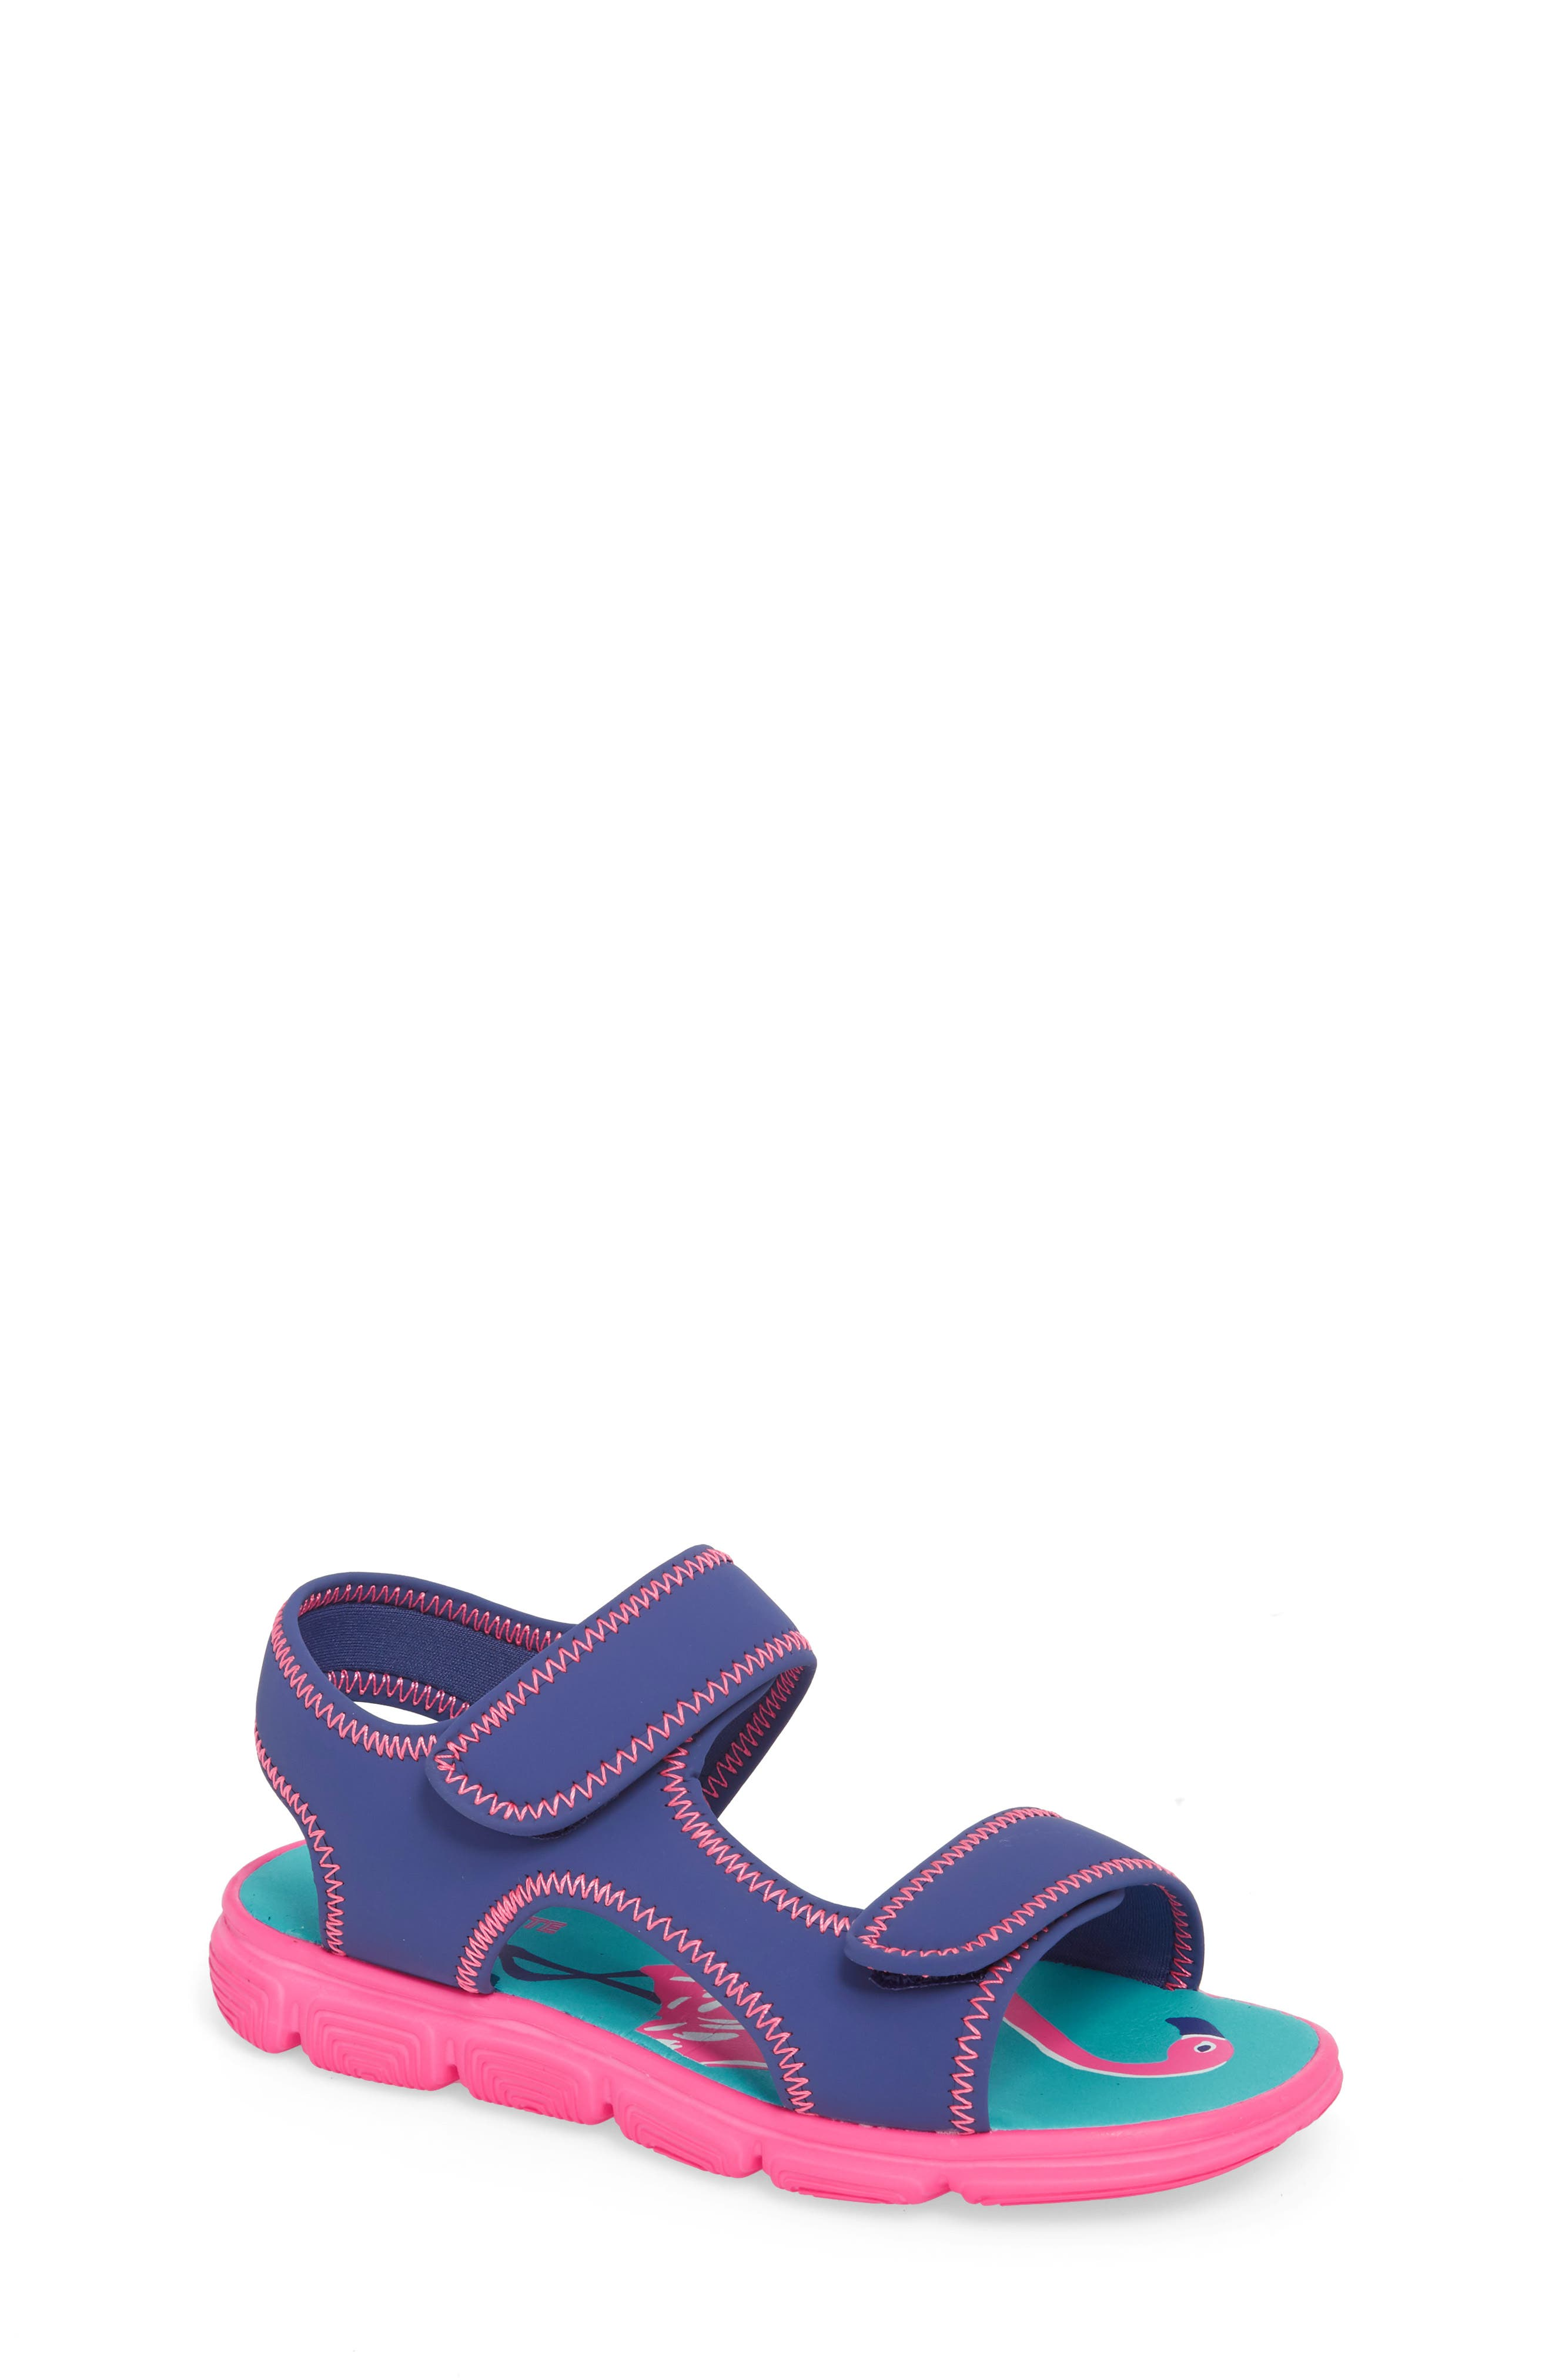 Everly Water Sandal,                             Main thumbnail 1, color,